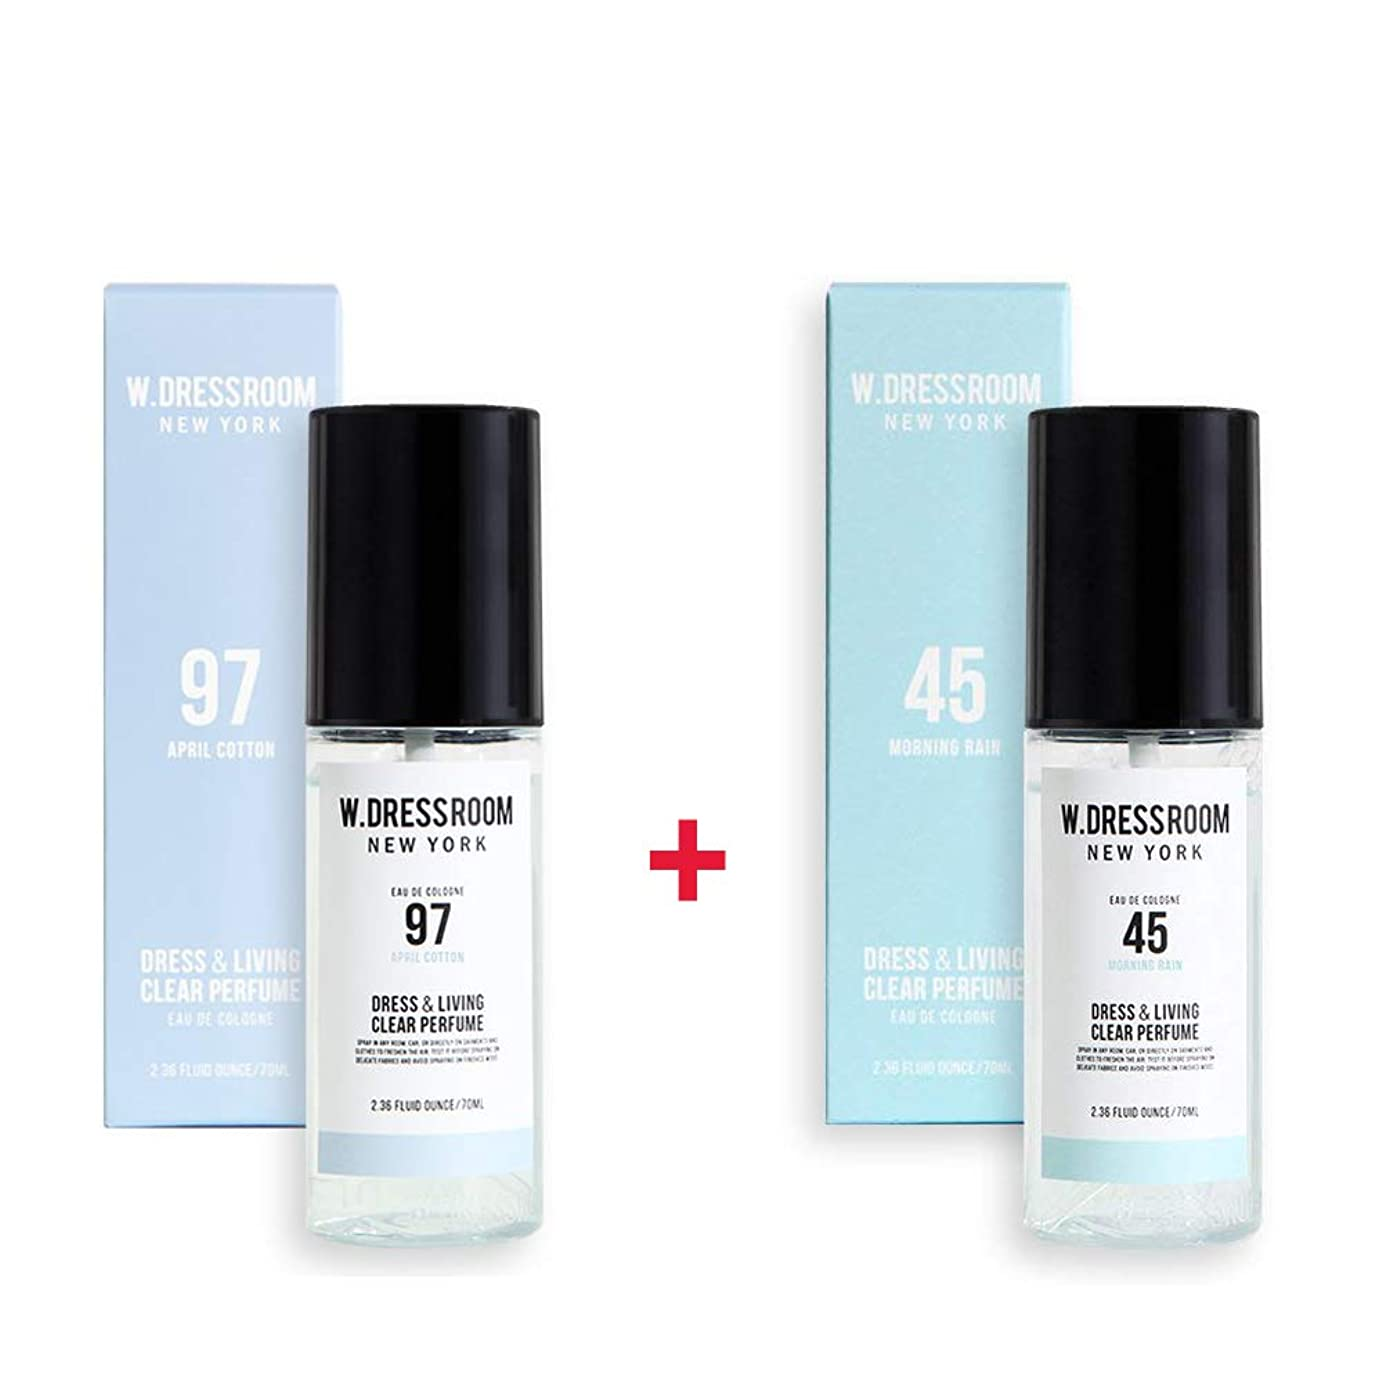 にぎやか重荷オプショナルW.DRESSROOM Dress & Living Clear Perfume 70ml (No 97 April Cotton)+(No 45 Morning Rain)